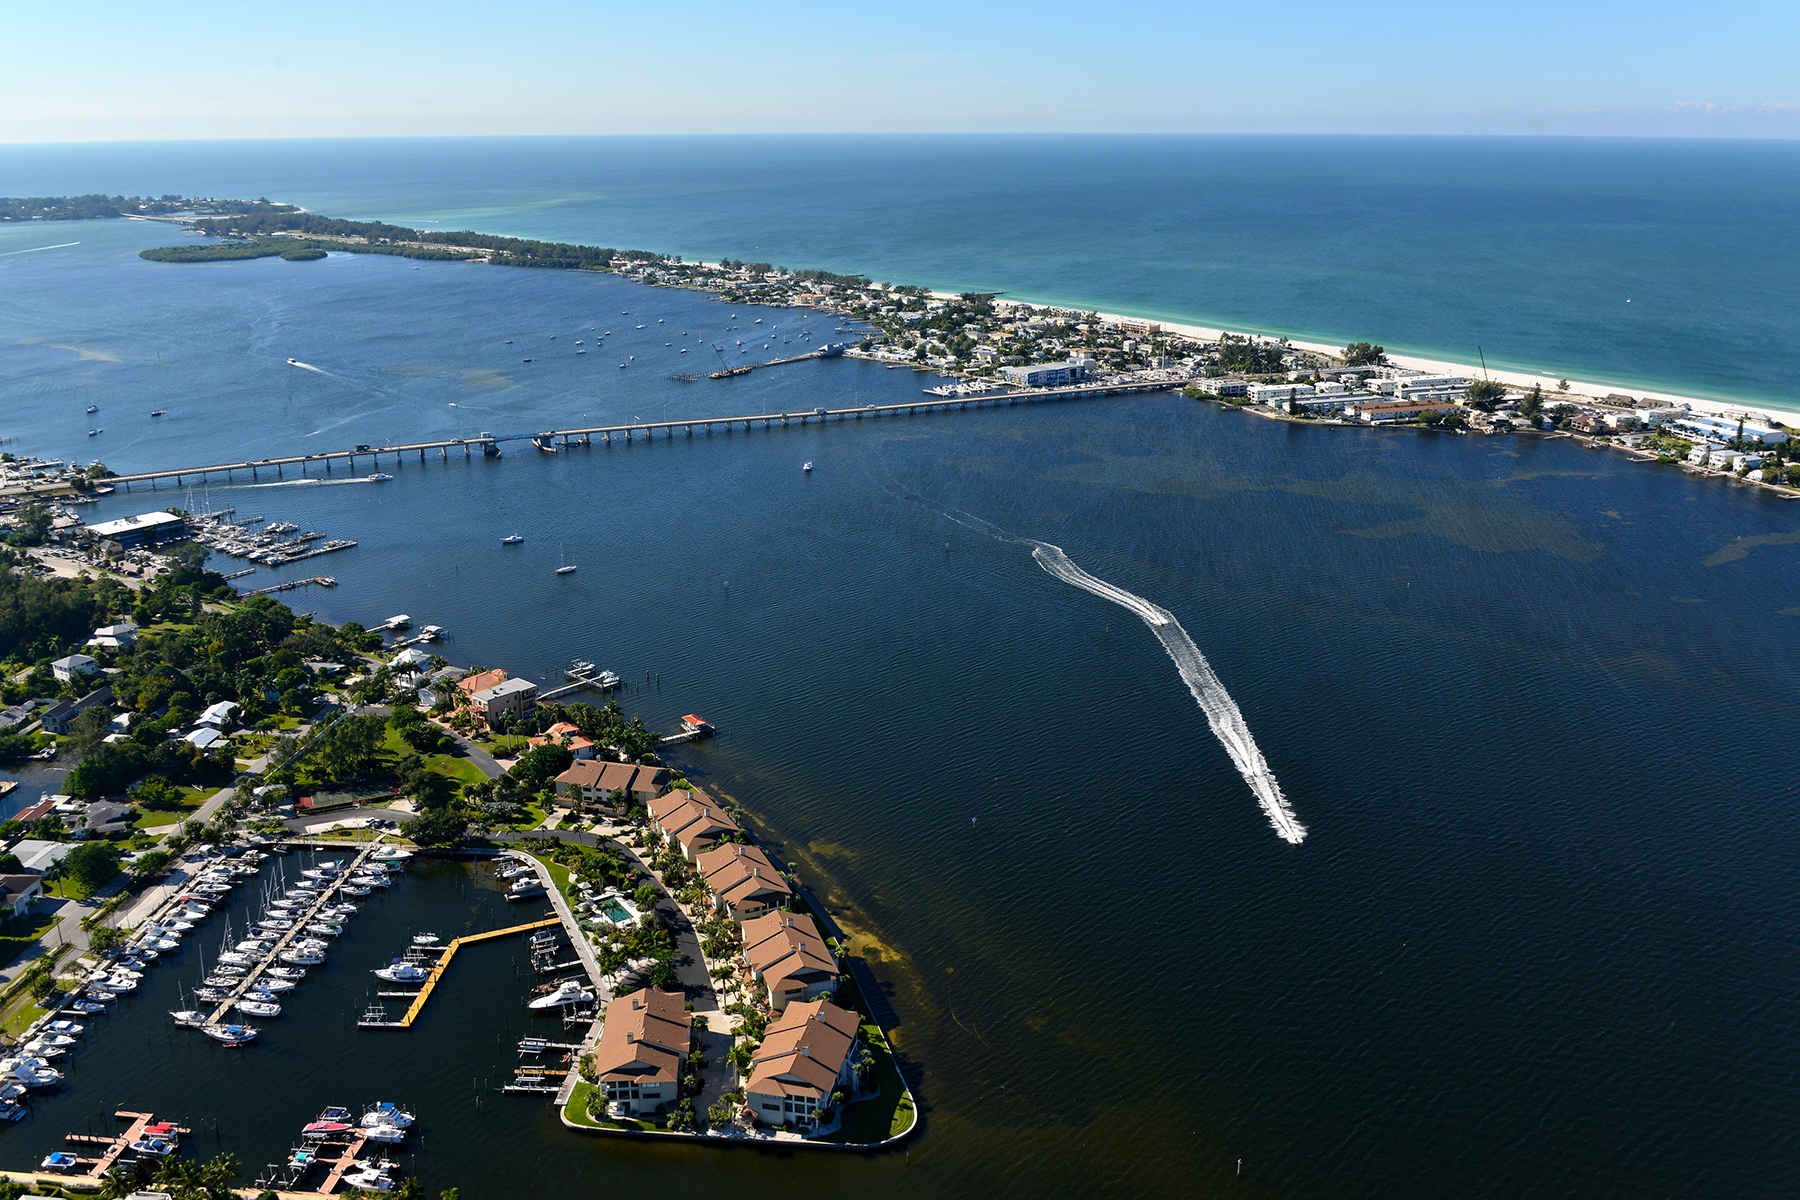 Condominium for Sale at THE POINTE AT MARINERS COVE 4216 Marina Ct 311 Cortez, Florida, 34215 United States